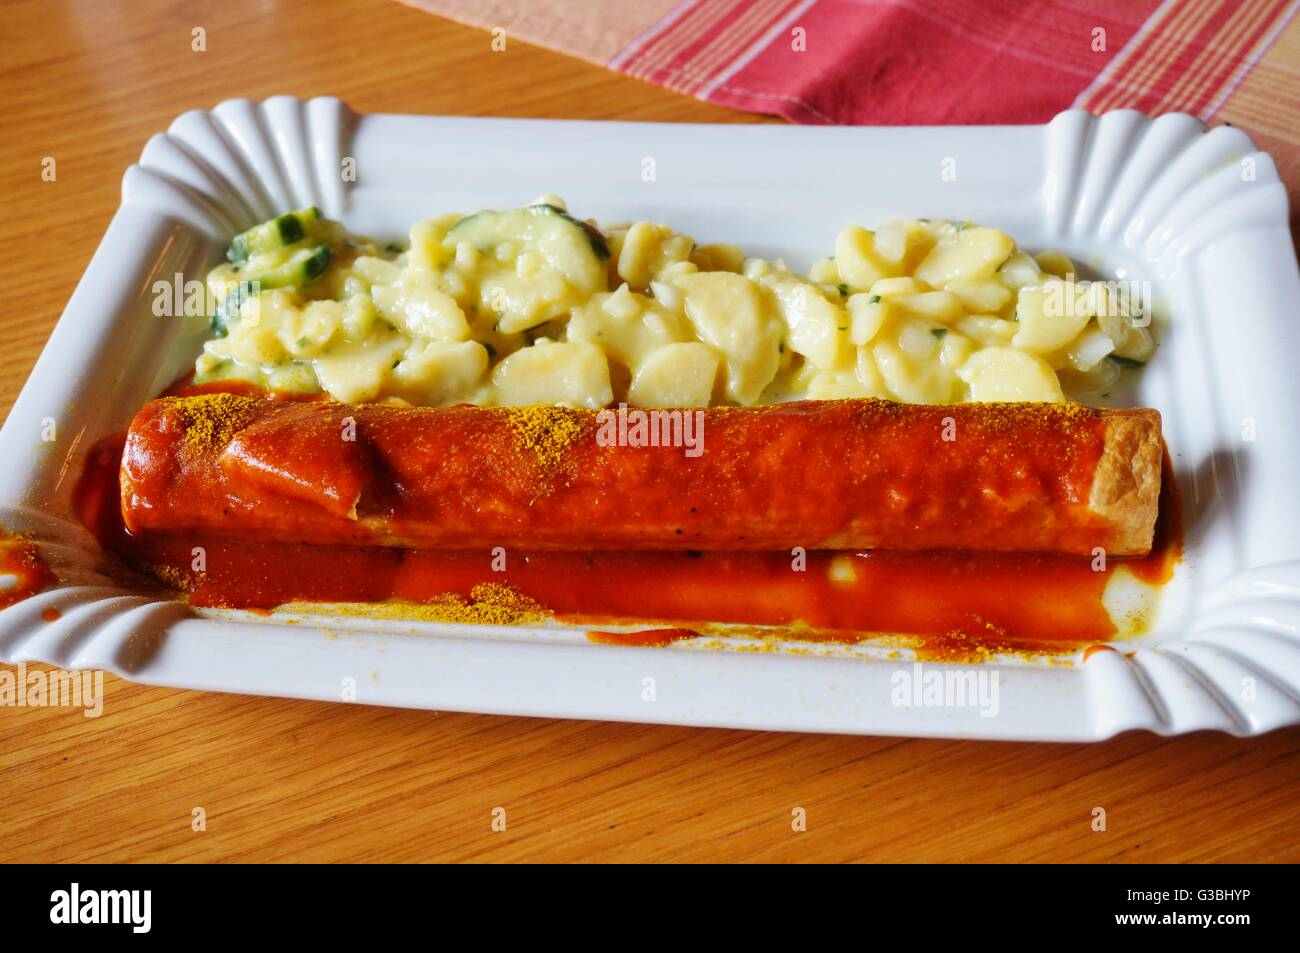 a curry wurst sausage in berlin stock photo royalty free. Black Bedroom Furniture Sets. Home Design Ideas